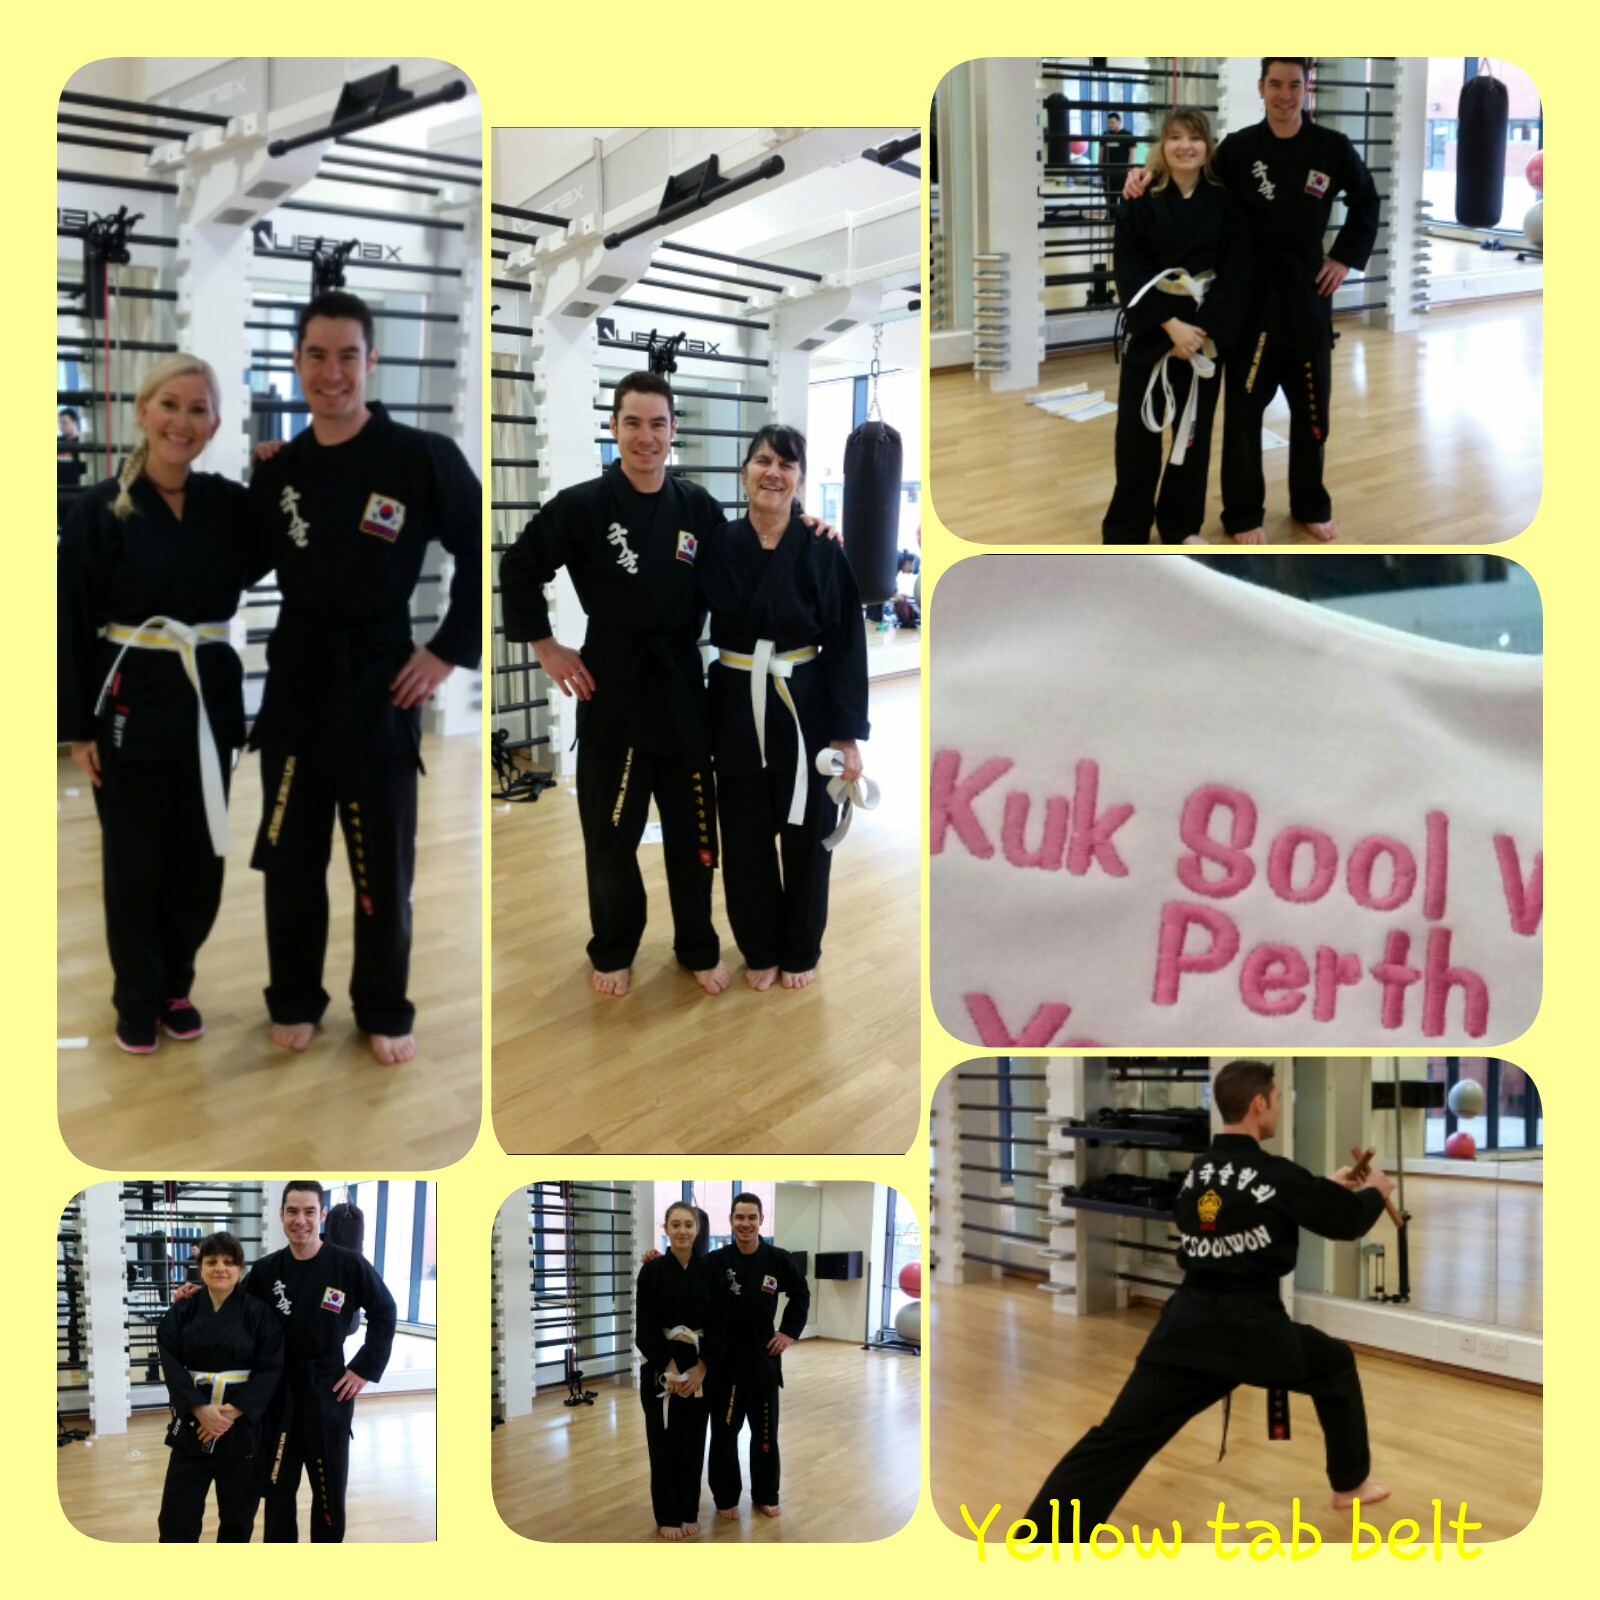 Promoting to yellow tab Kuk Sool Won of Perth